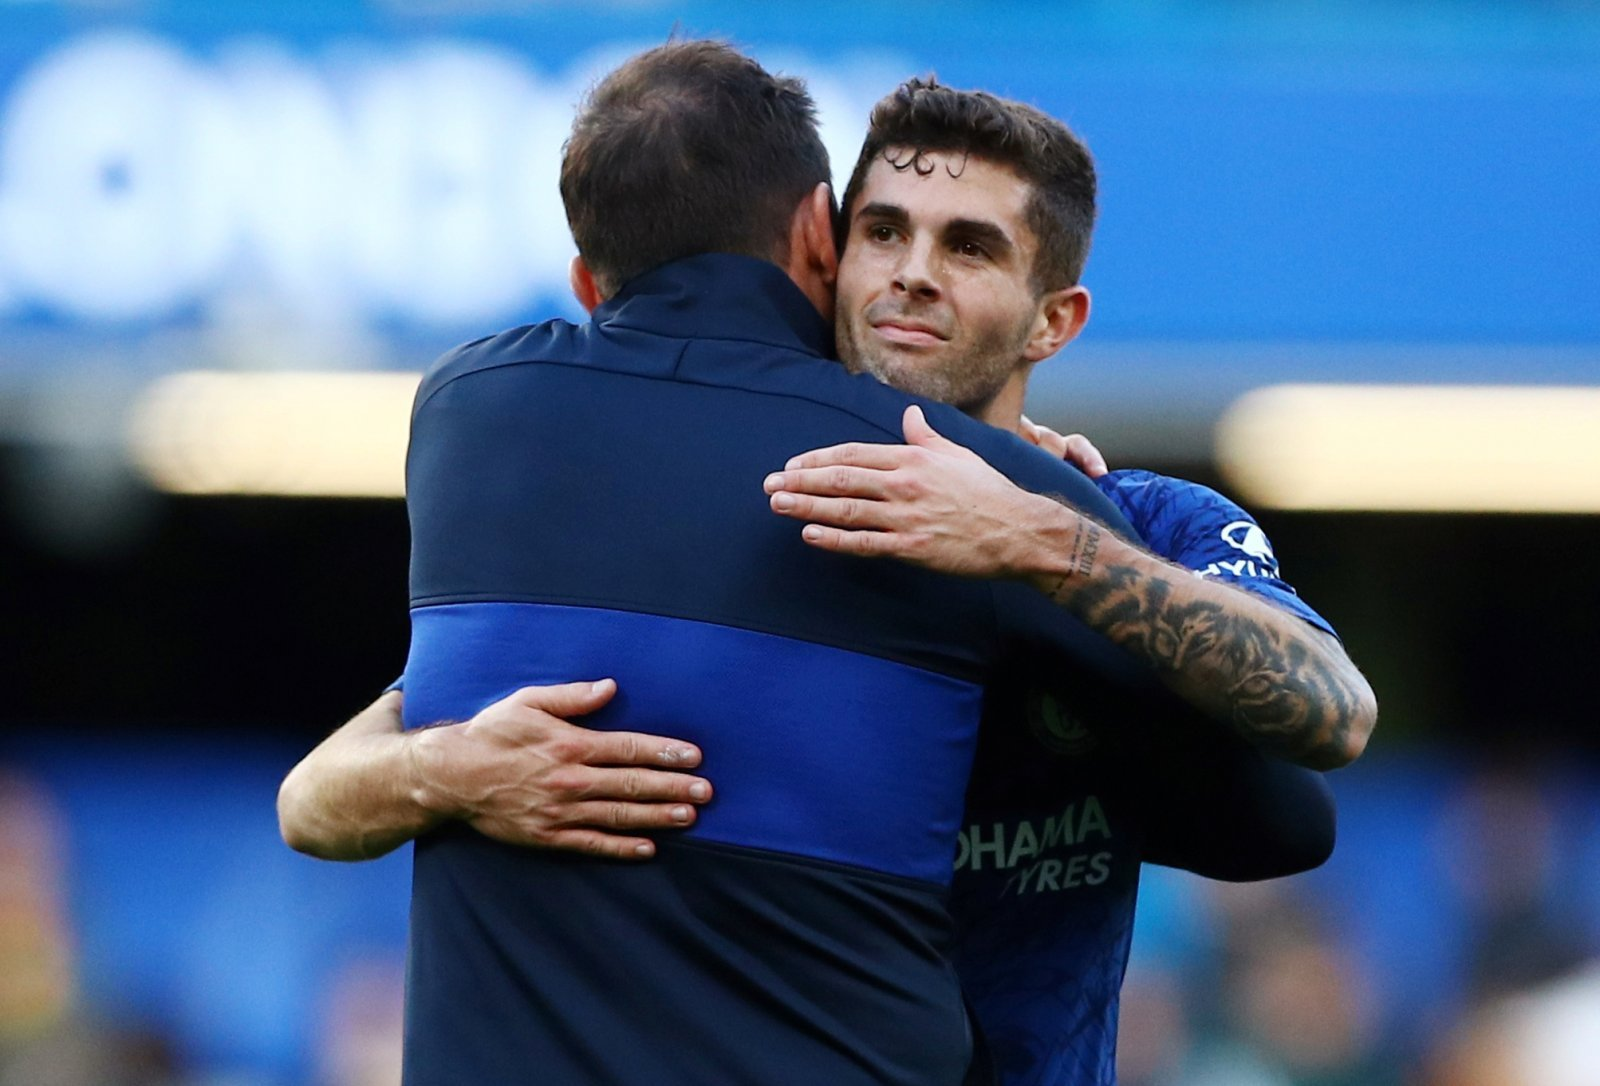 Chelsea: Fans were delighted to see Christian Pulisic come on for Mason Mount